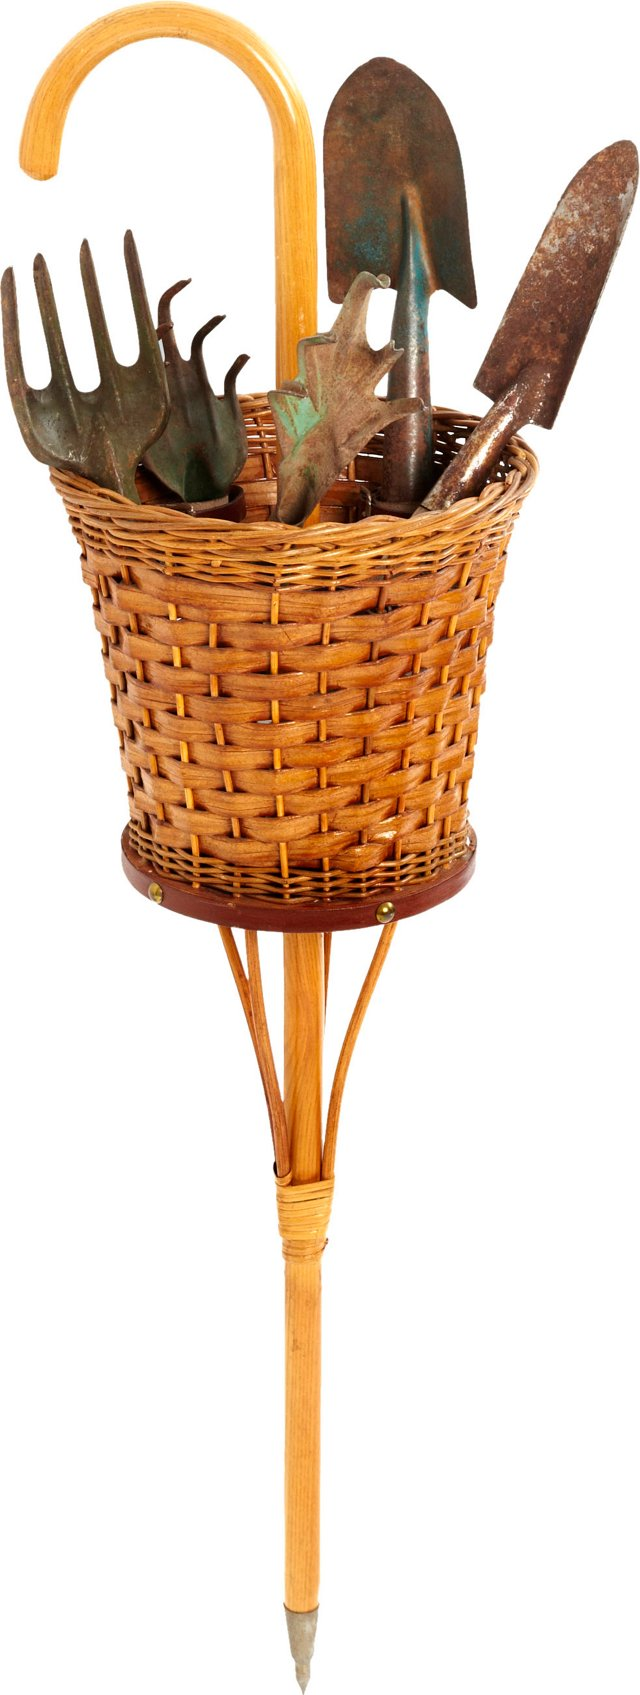 Mark Cross Garden Basket w/Tools